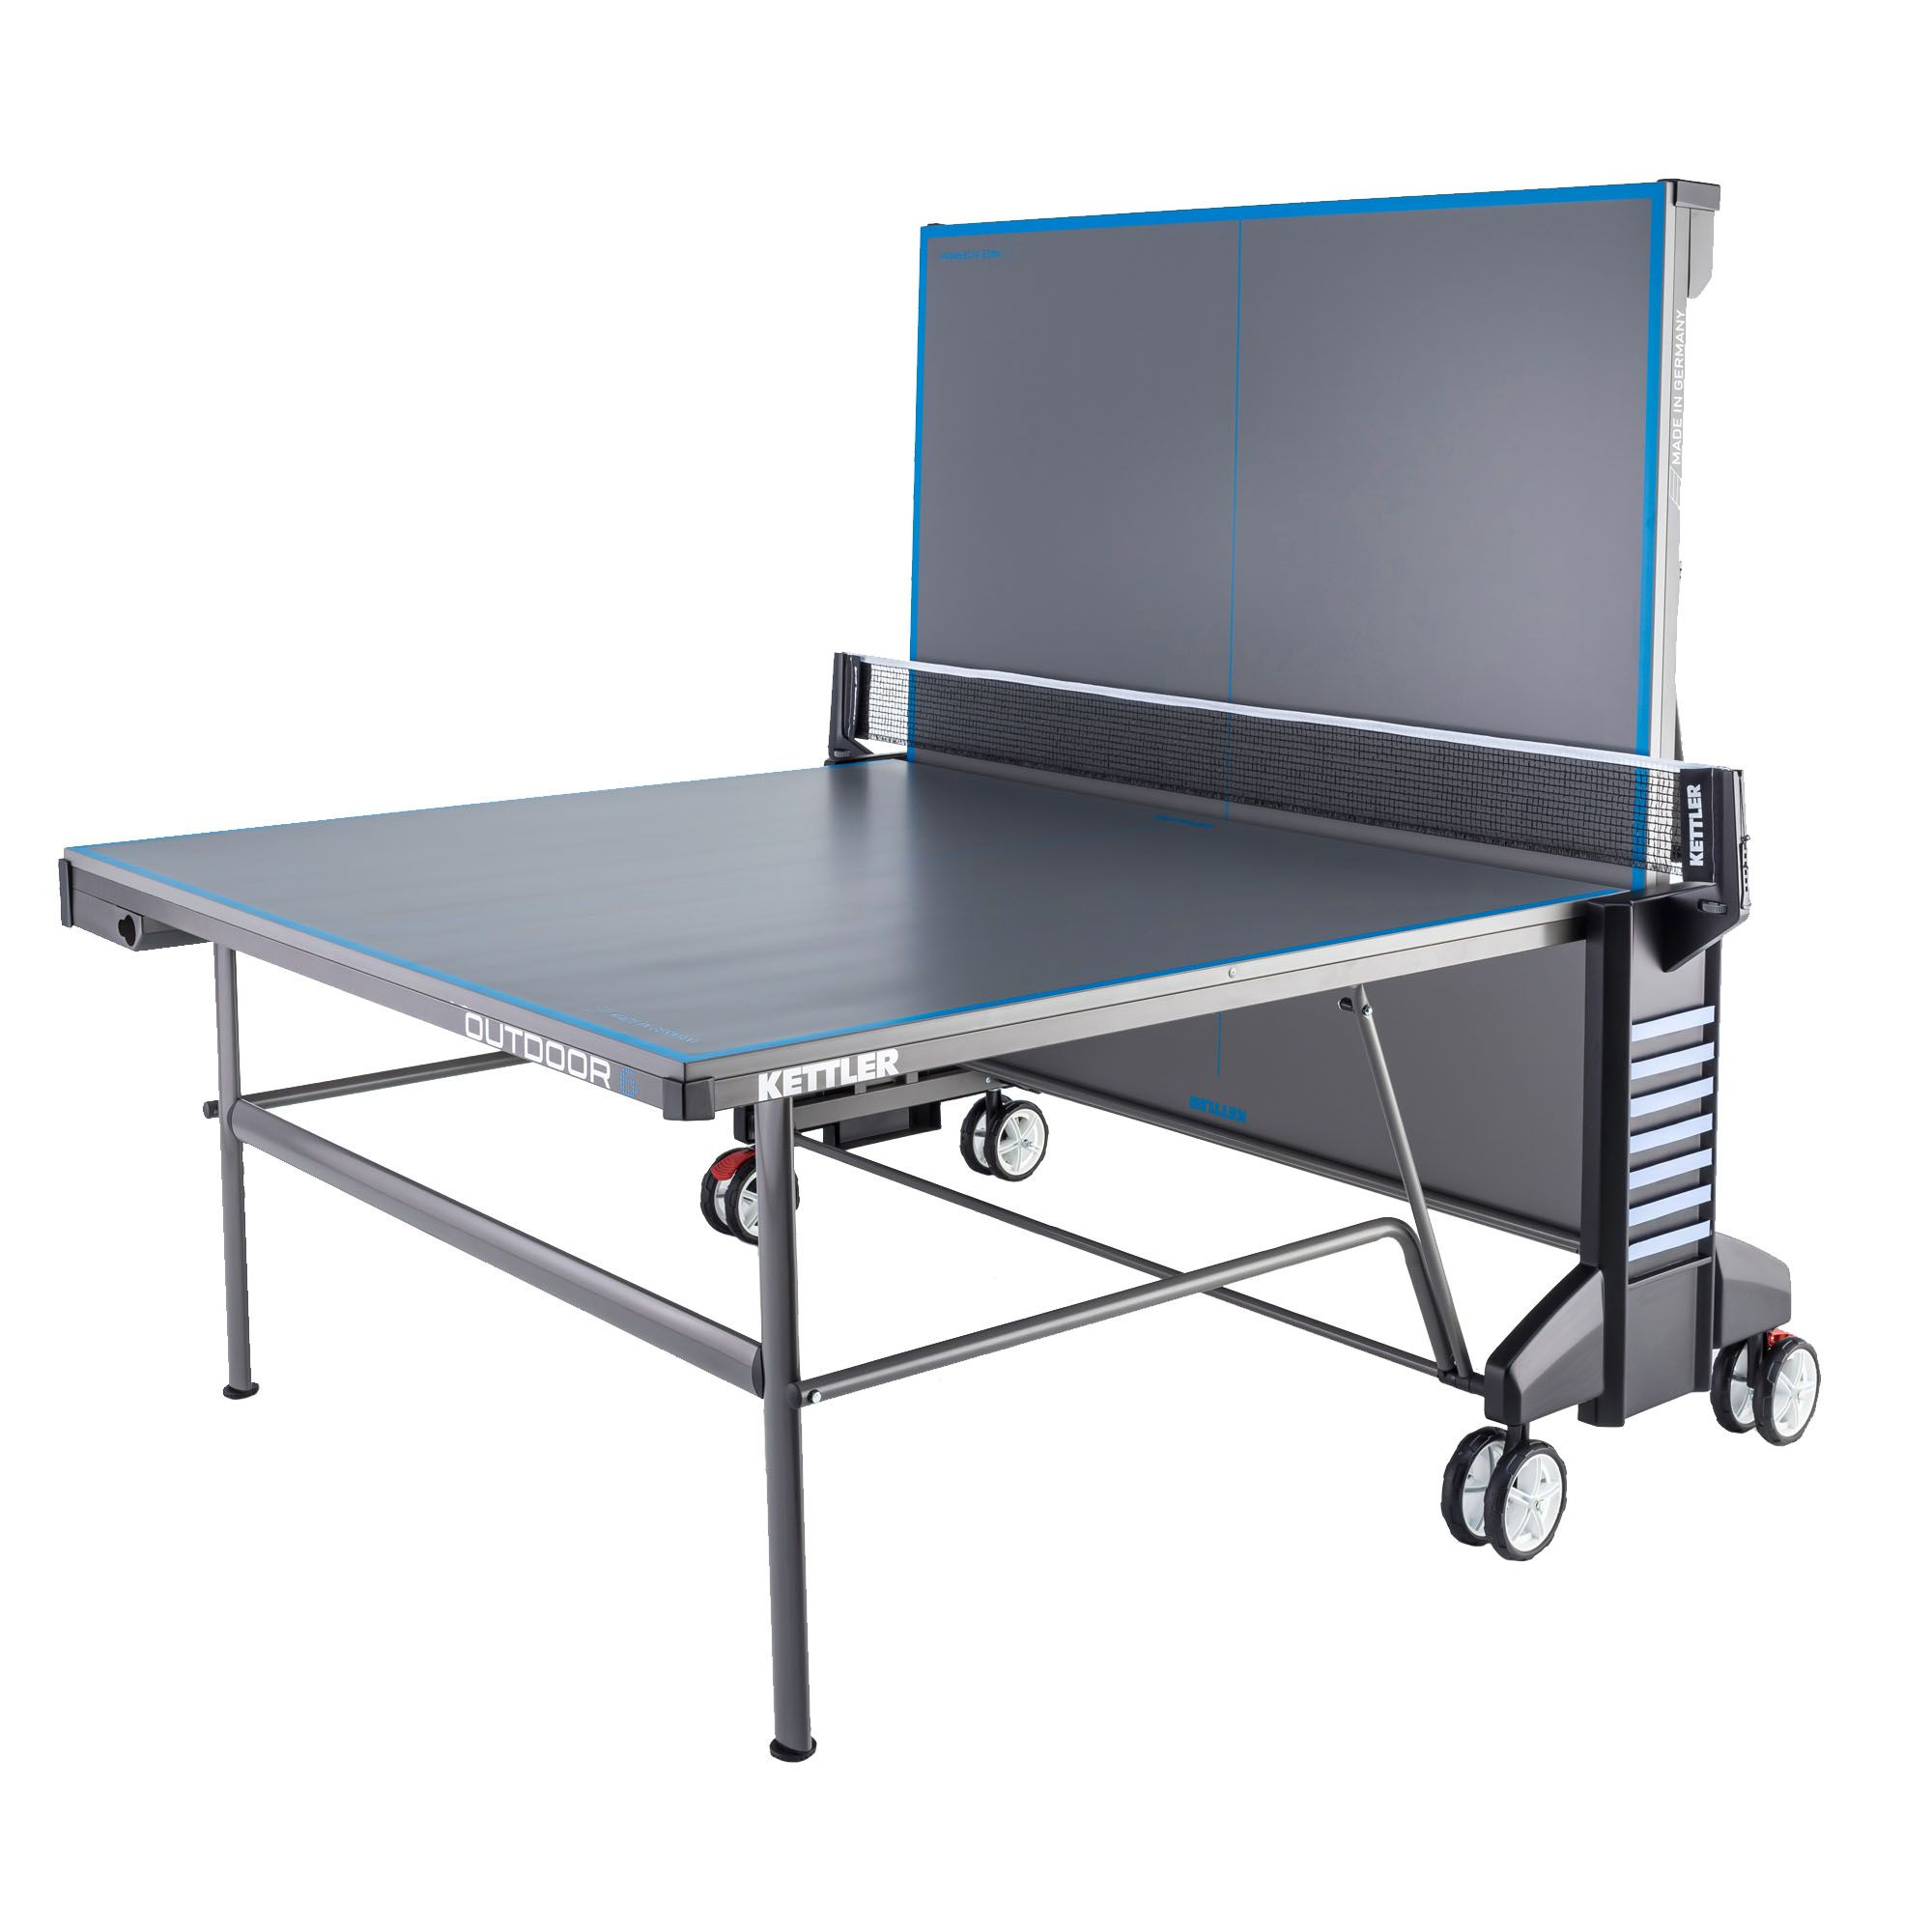 Kettler classic outdoor 6 table tennis table for Table tennis 6 0